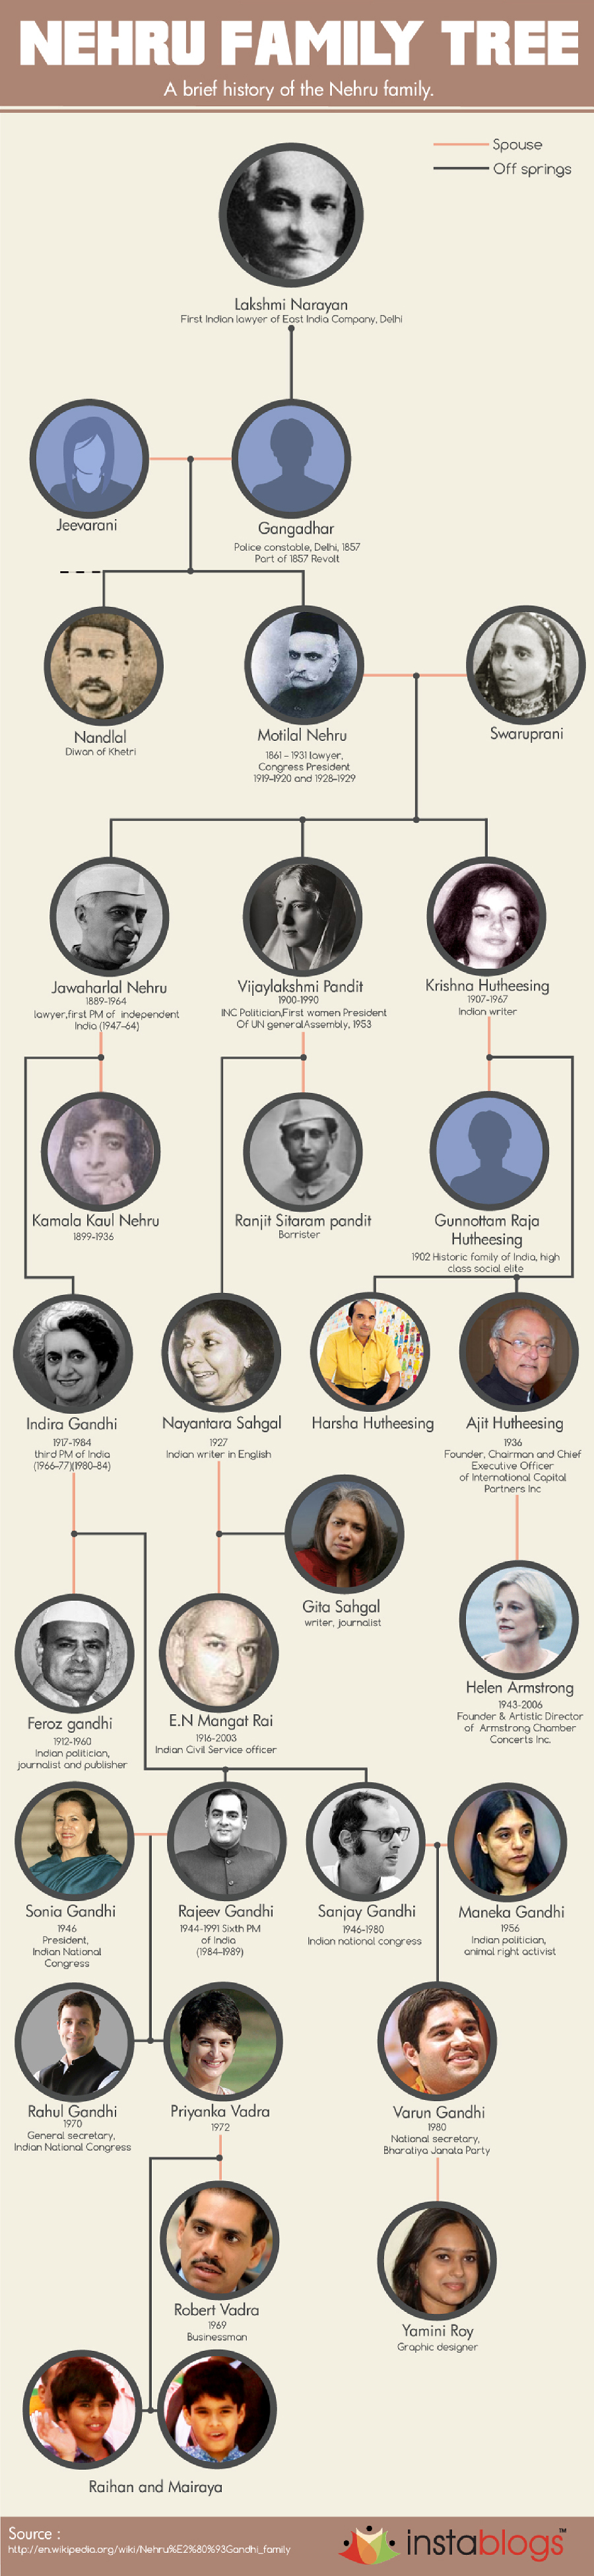 The Family of Nehru.